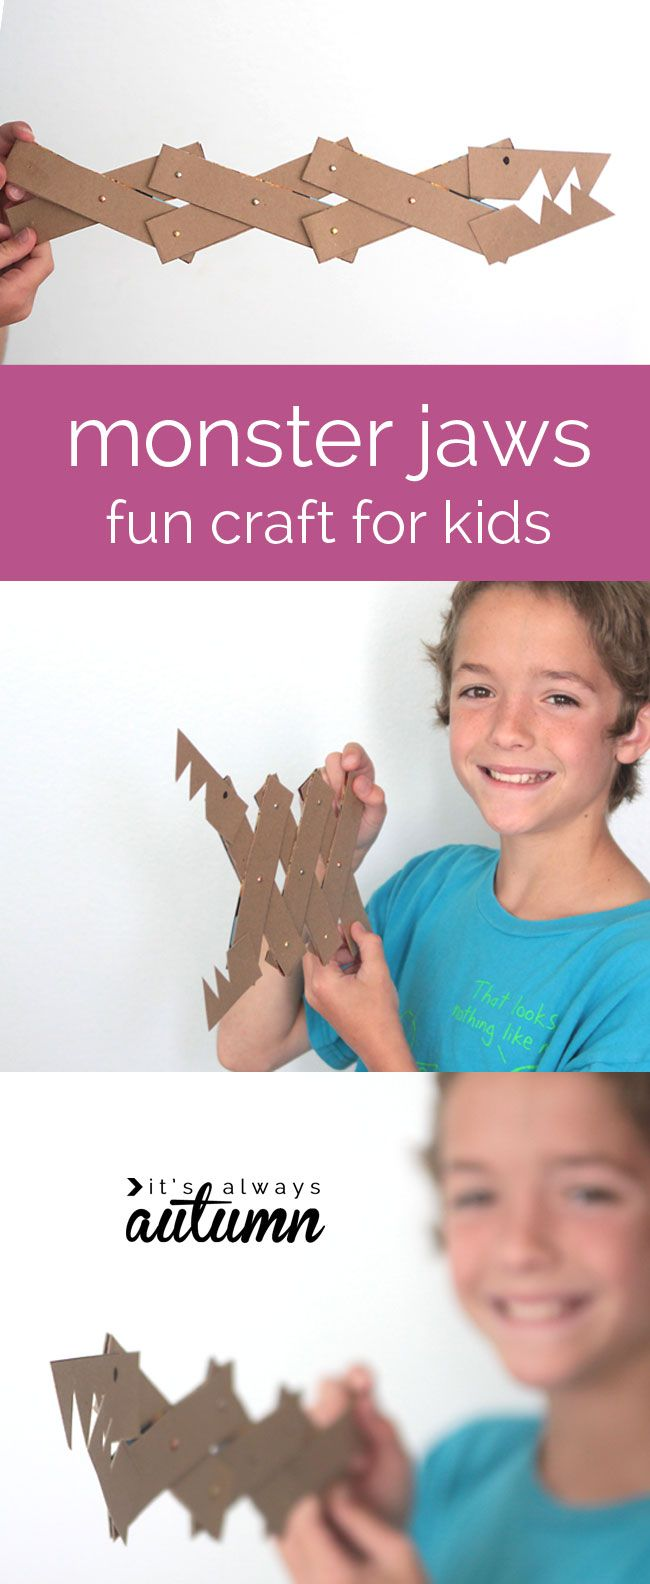 great craft for older kids - make fun monster jaws from cereal boxes and other supplies you probably have on hand!